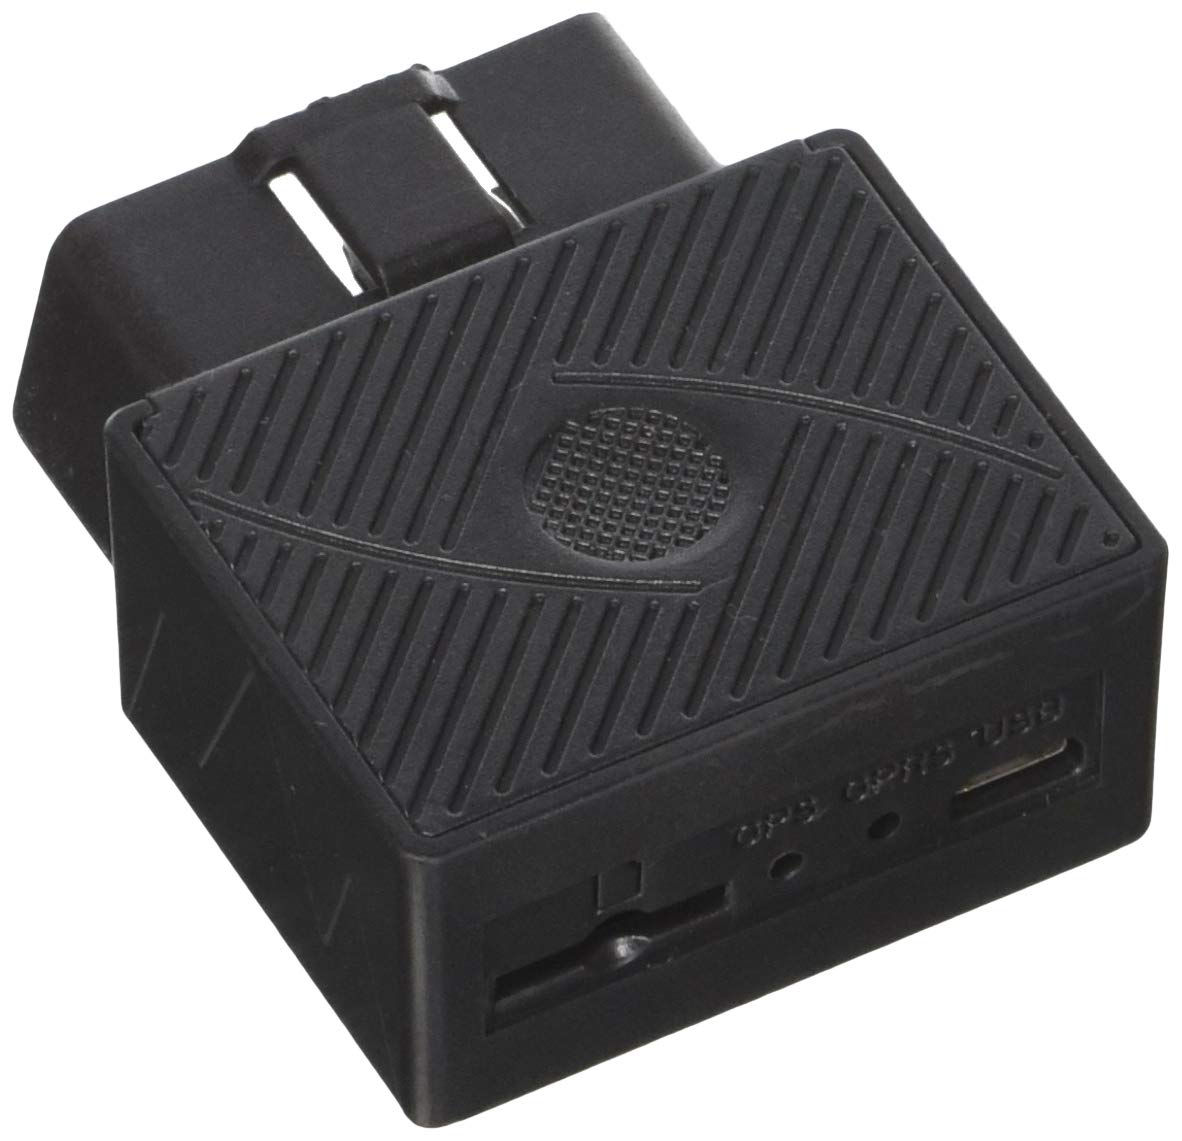 GPRS Mini Portable Vehicle Locating Personal Tracking Device PRE-ACTIVATED SIM CARD WITH 3 MONTHS SERVICE FREE!!! w// 20 SECOND UPDATES AES RGT902 OBD II GPS Tracker Connects to OBD Port.